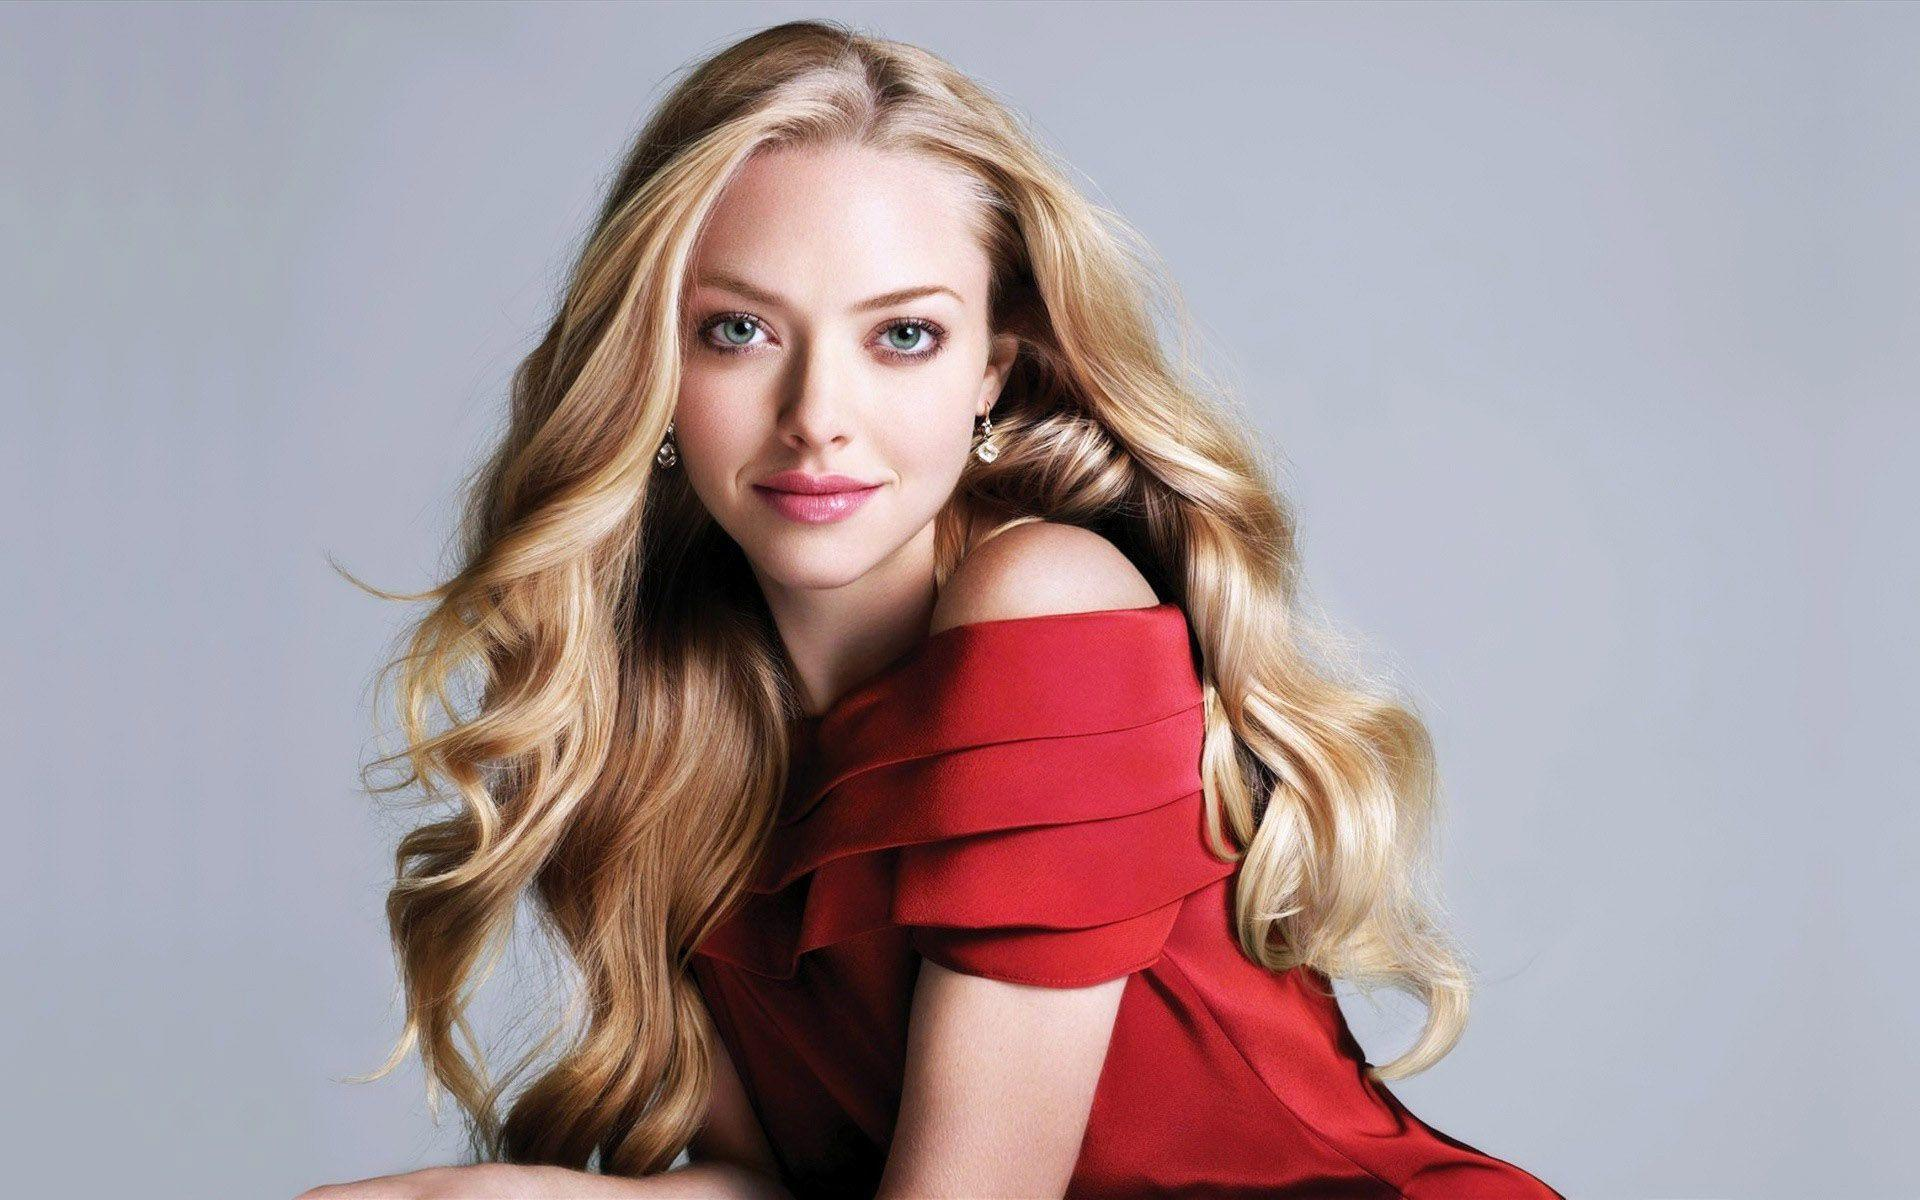 dreamology amanda seyfried hd - photo #15